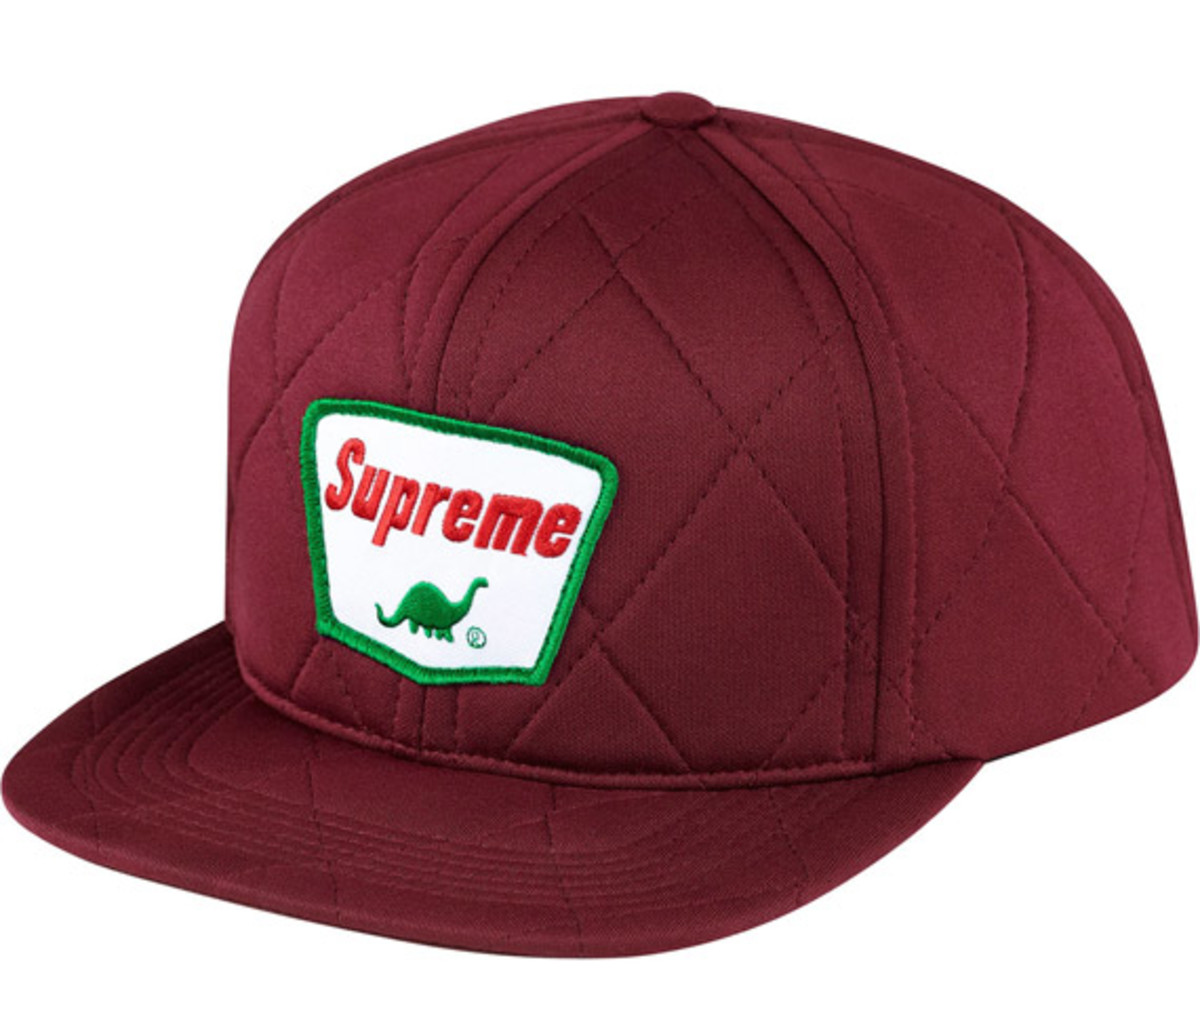 supreme-quilted-foam-6-panel-snapback-caps-03